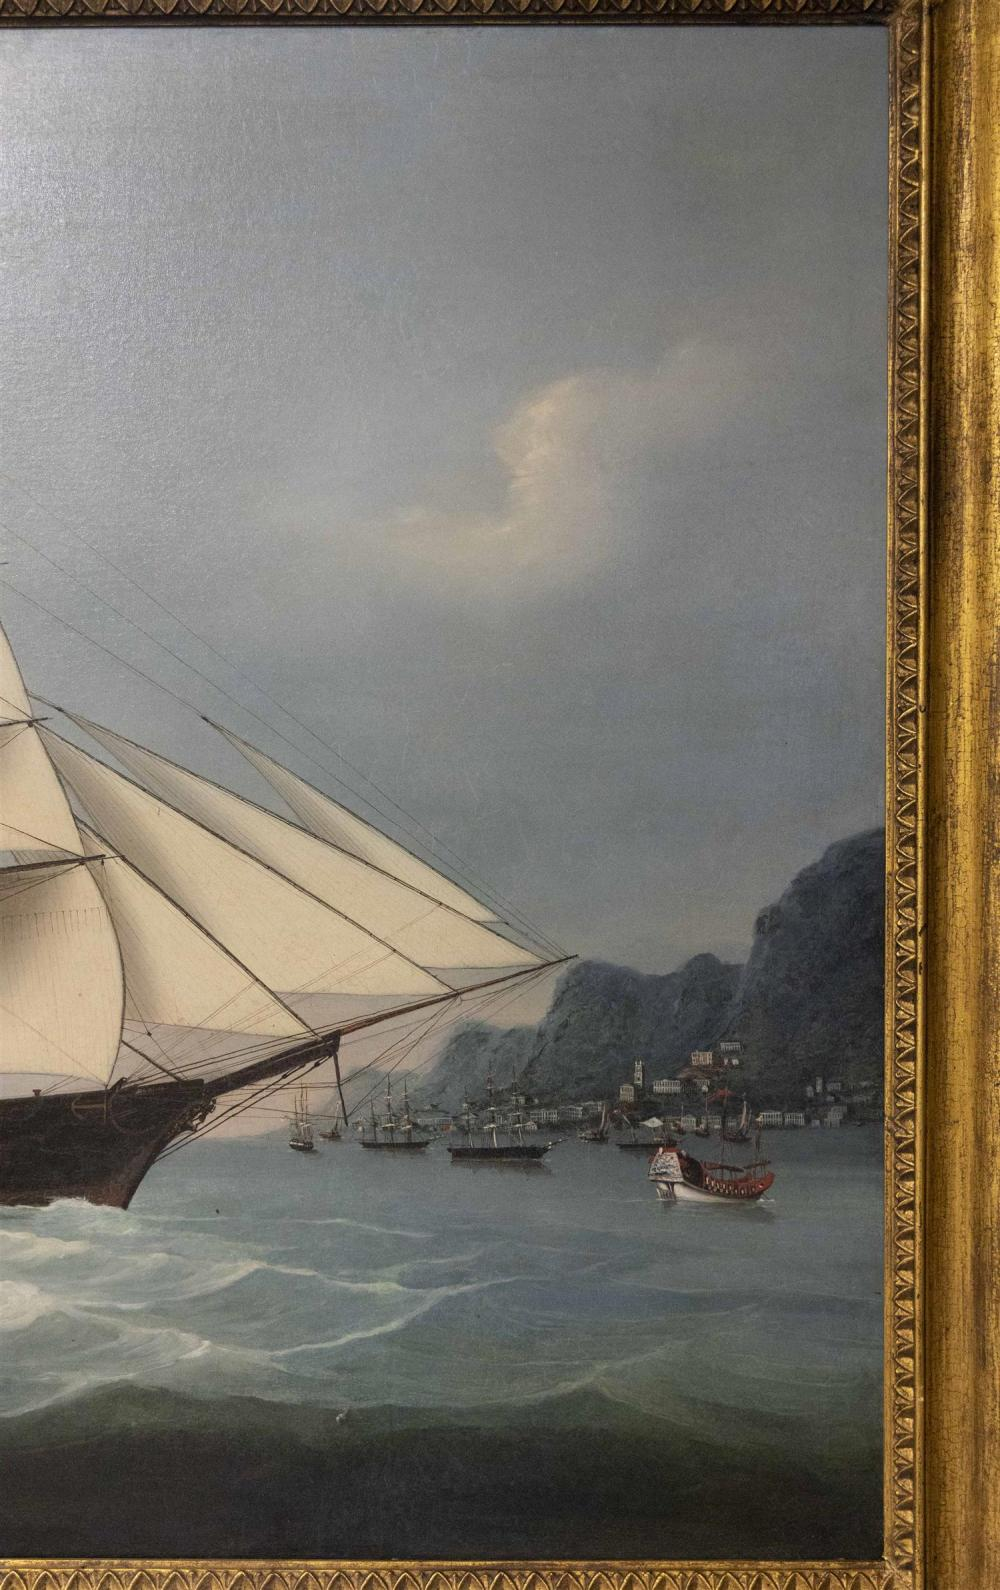 CHINESE SCHOOL, Circa 1856, American clipper Daring at Hong Kong, flying the Bush & Comstock house flag., Oil on canvas, 30.75